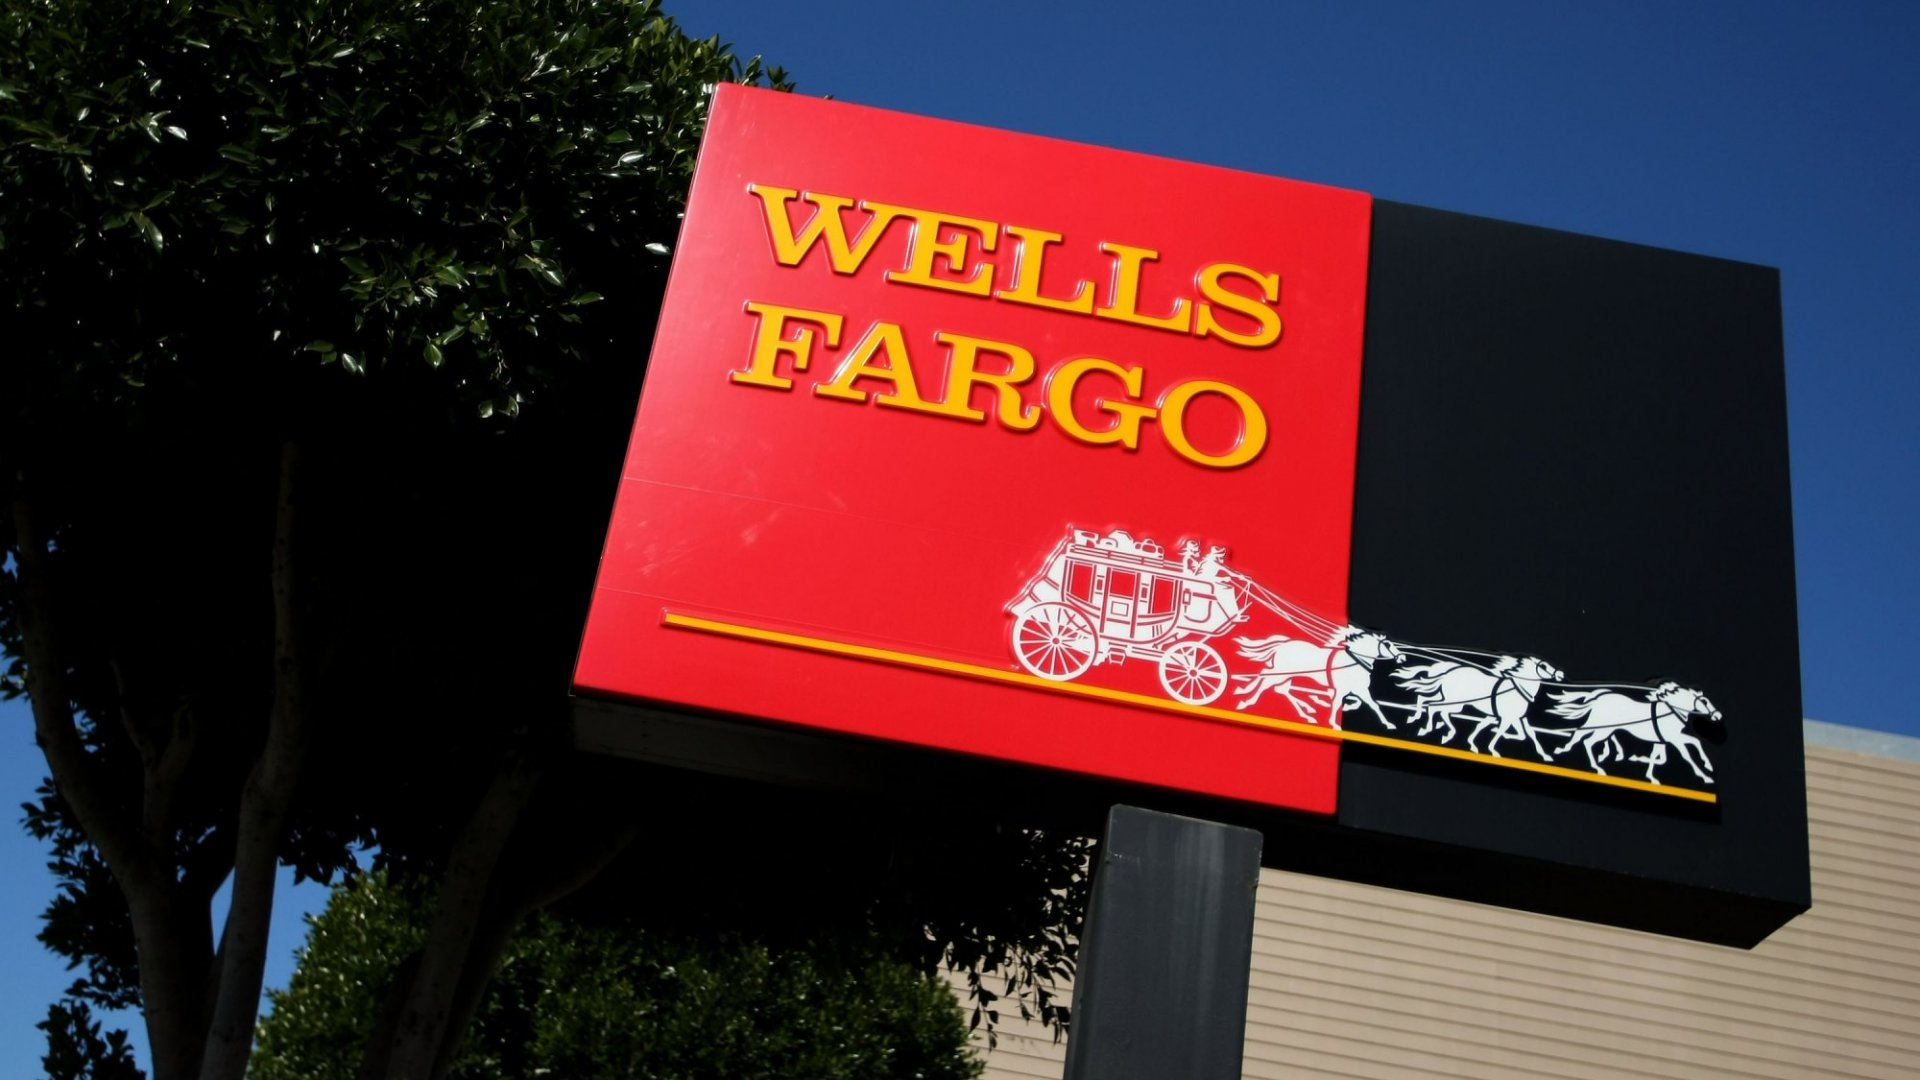 Is Wells Fargo Management Crooked or Clueless?